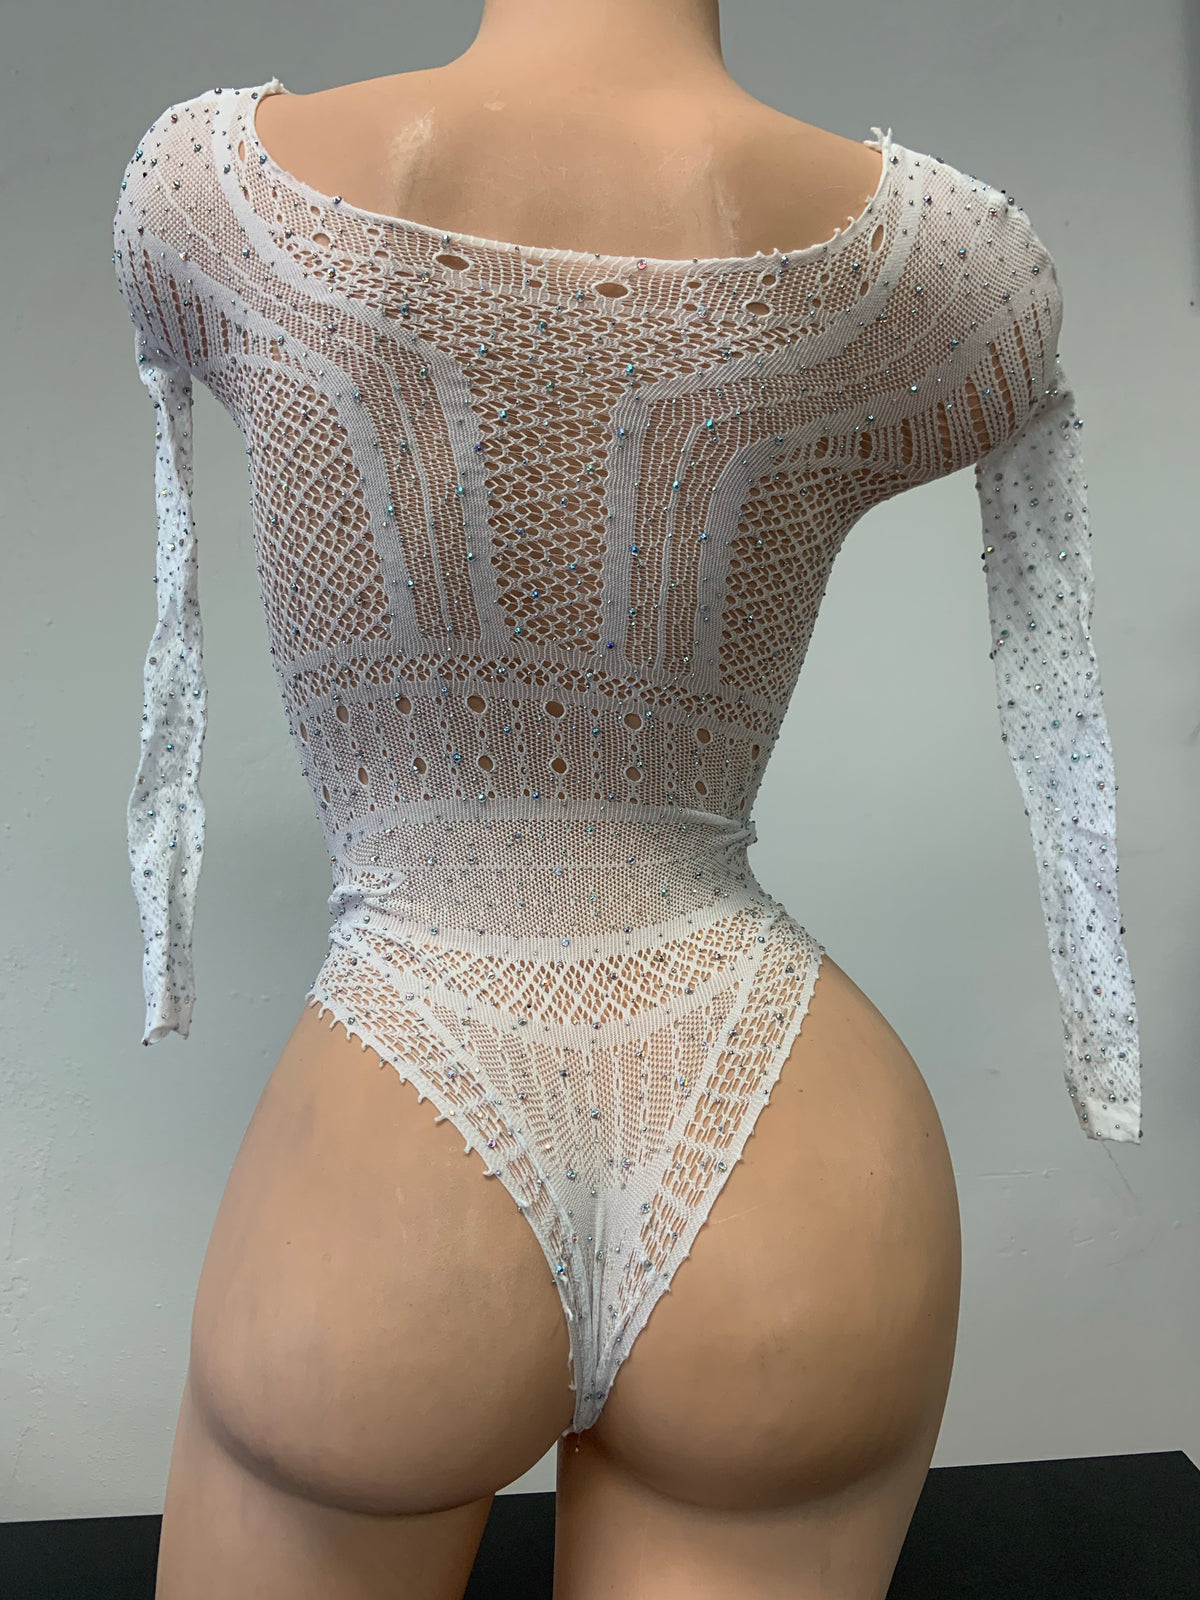 Mesh Rhinestone Bodysuit - Exotic Dancewear - Stripper Outfits